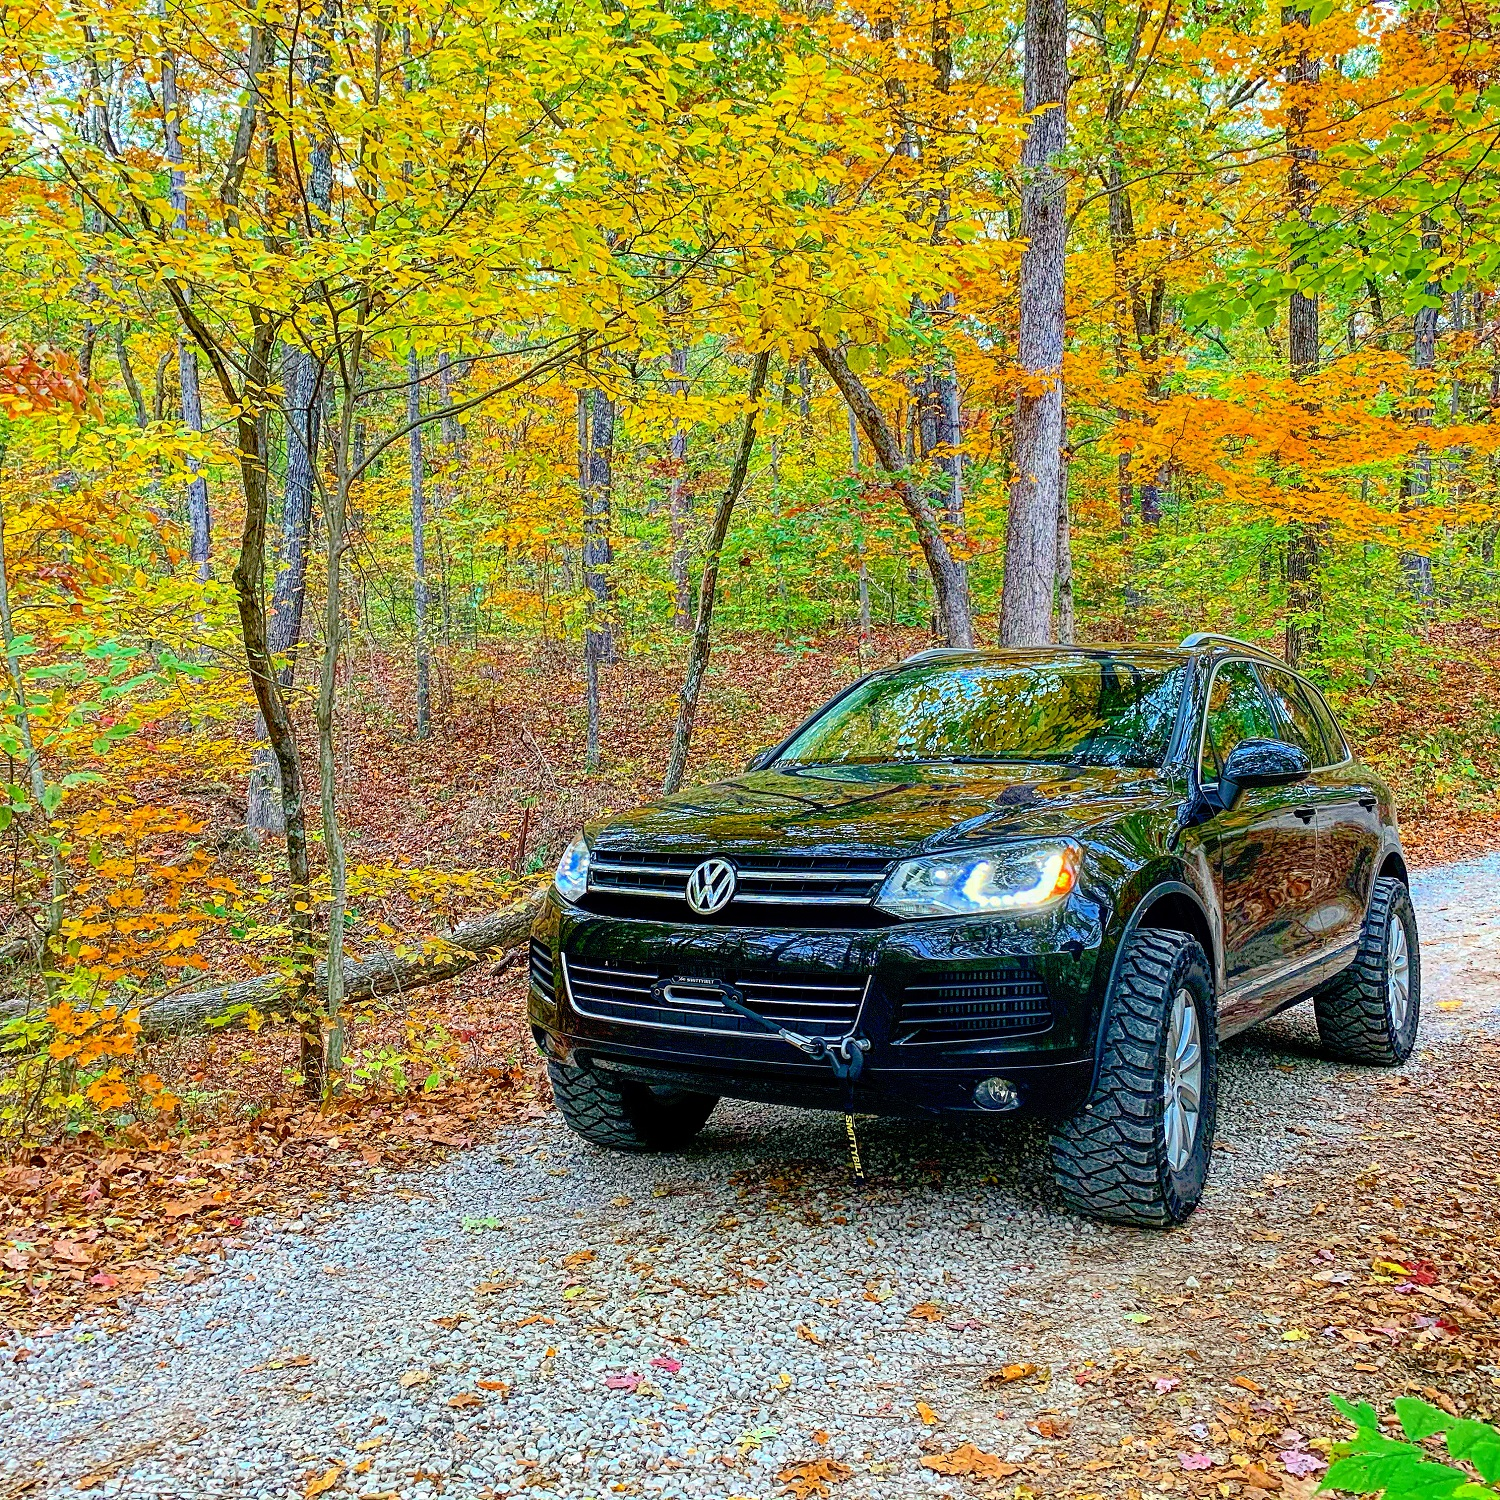 Lifted Volkswagen Touareg With a bumper mount winch